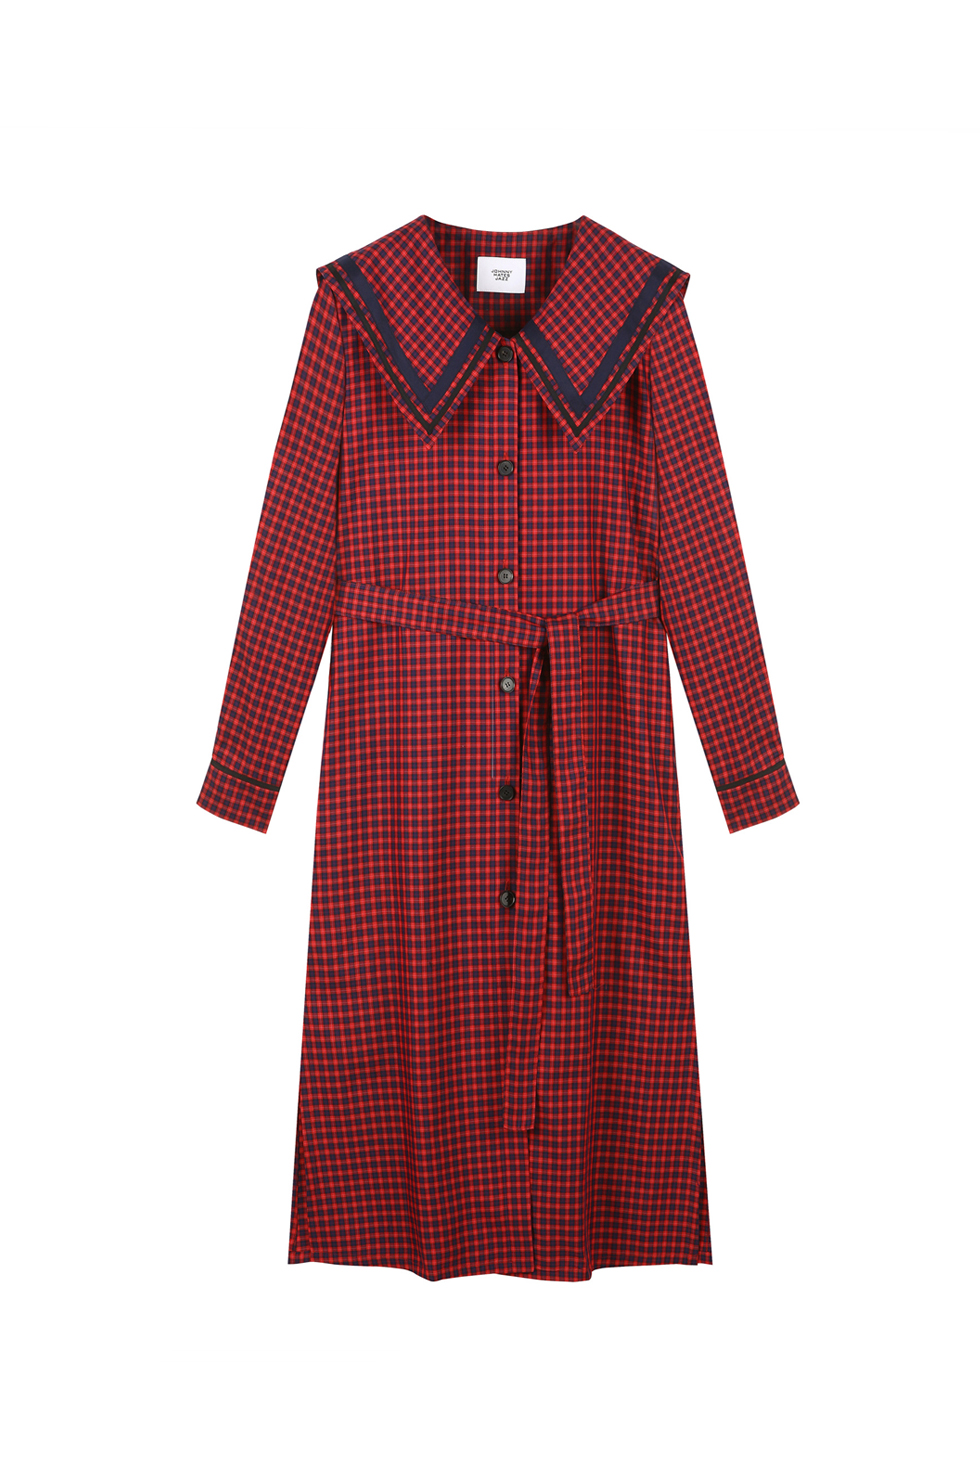 CHECK SHIRTS DRESS - RED